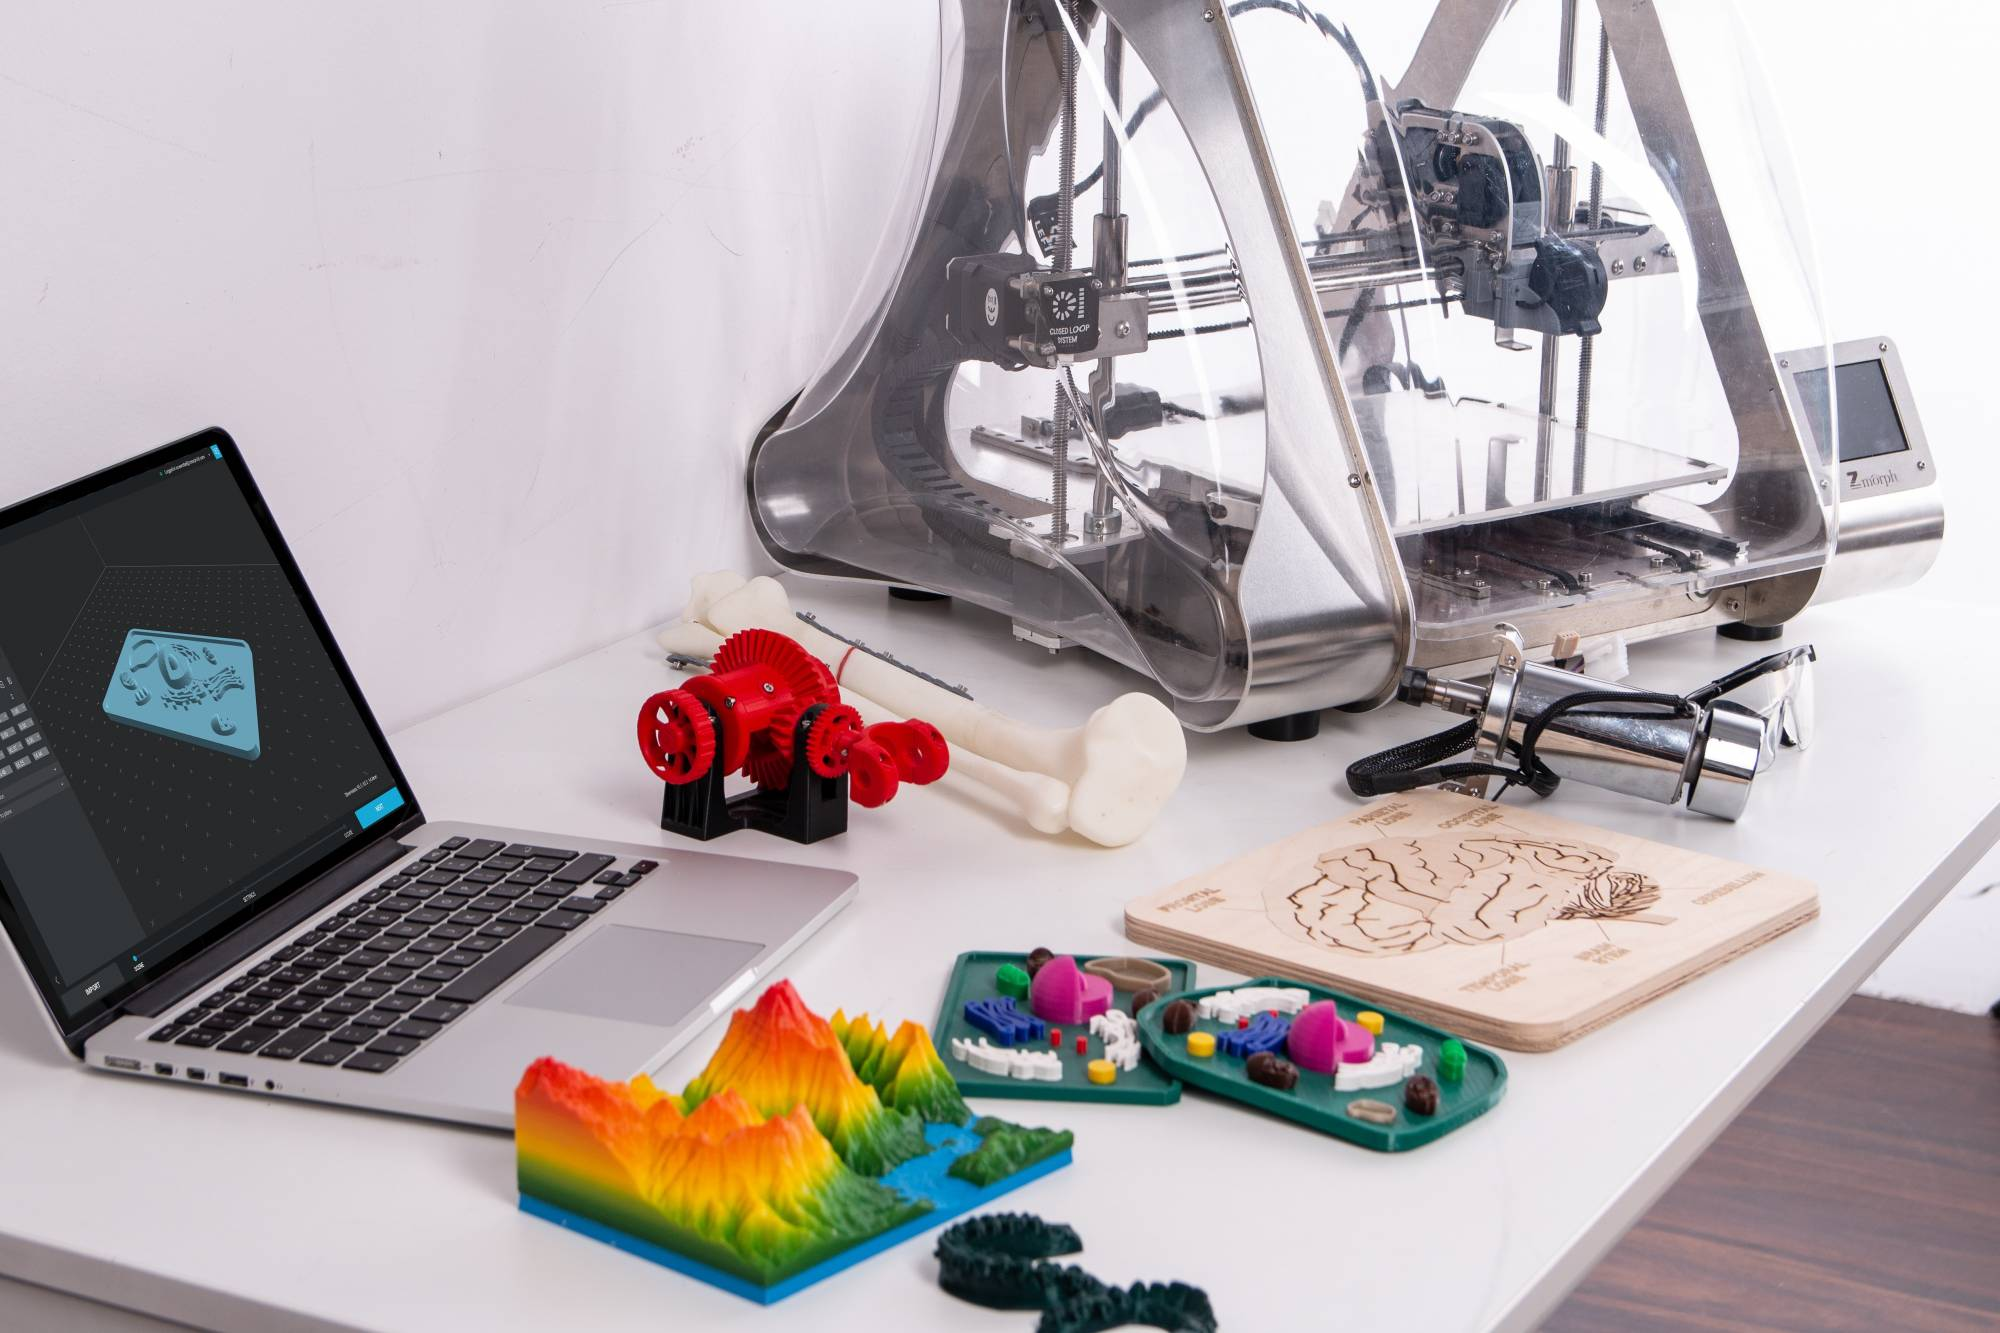 Table with 3D printer